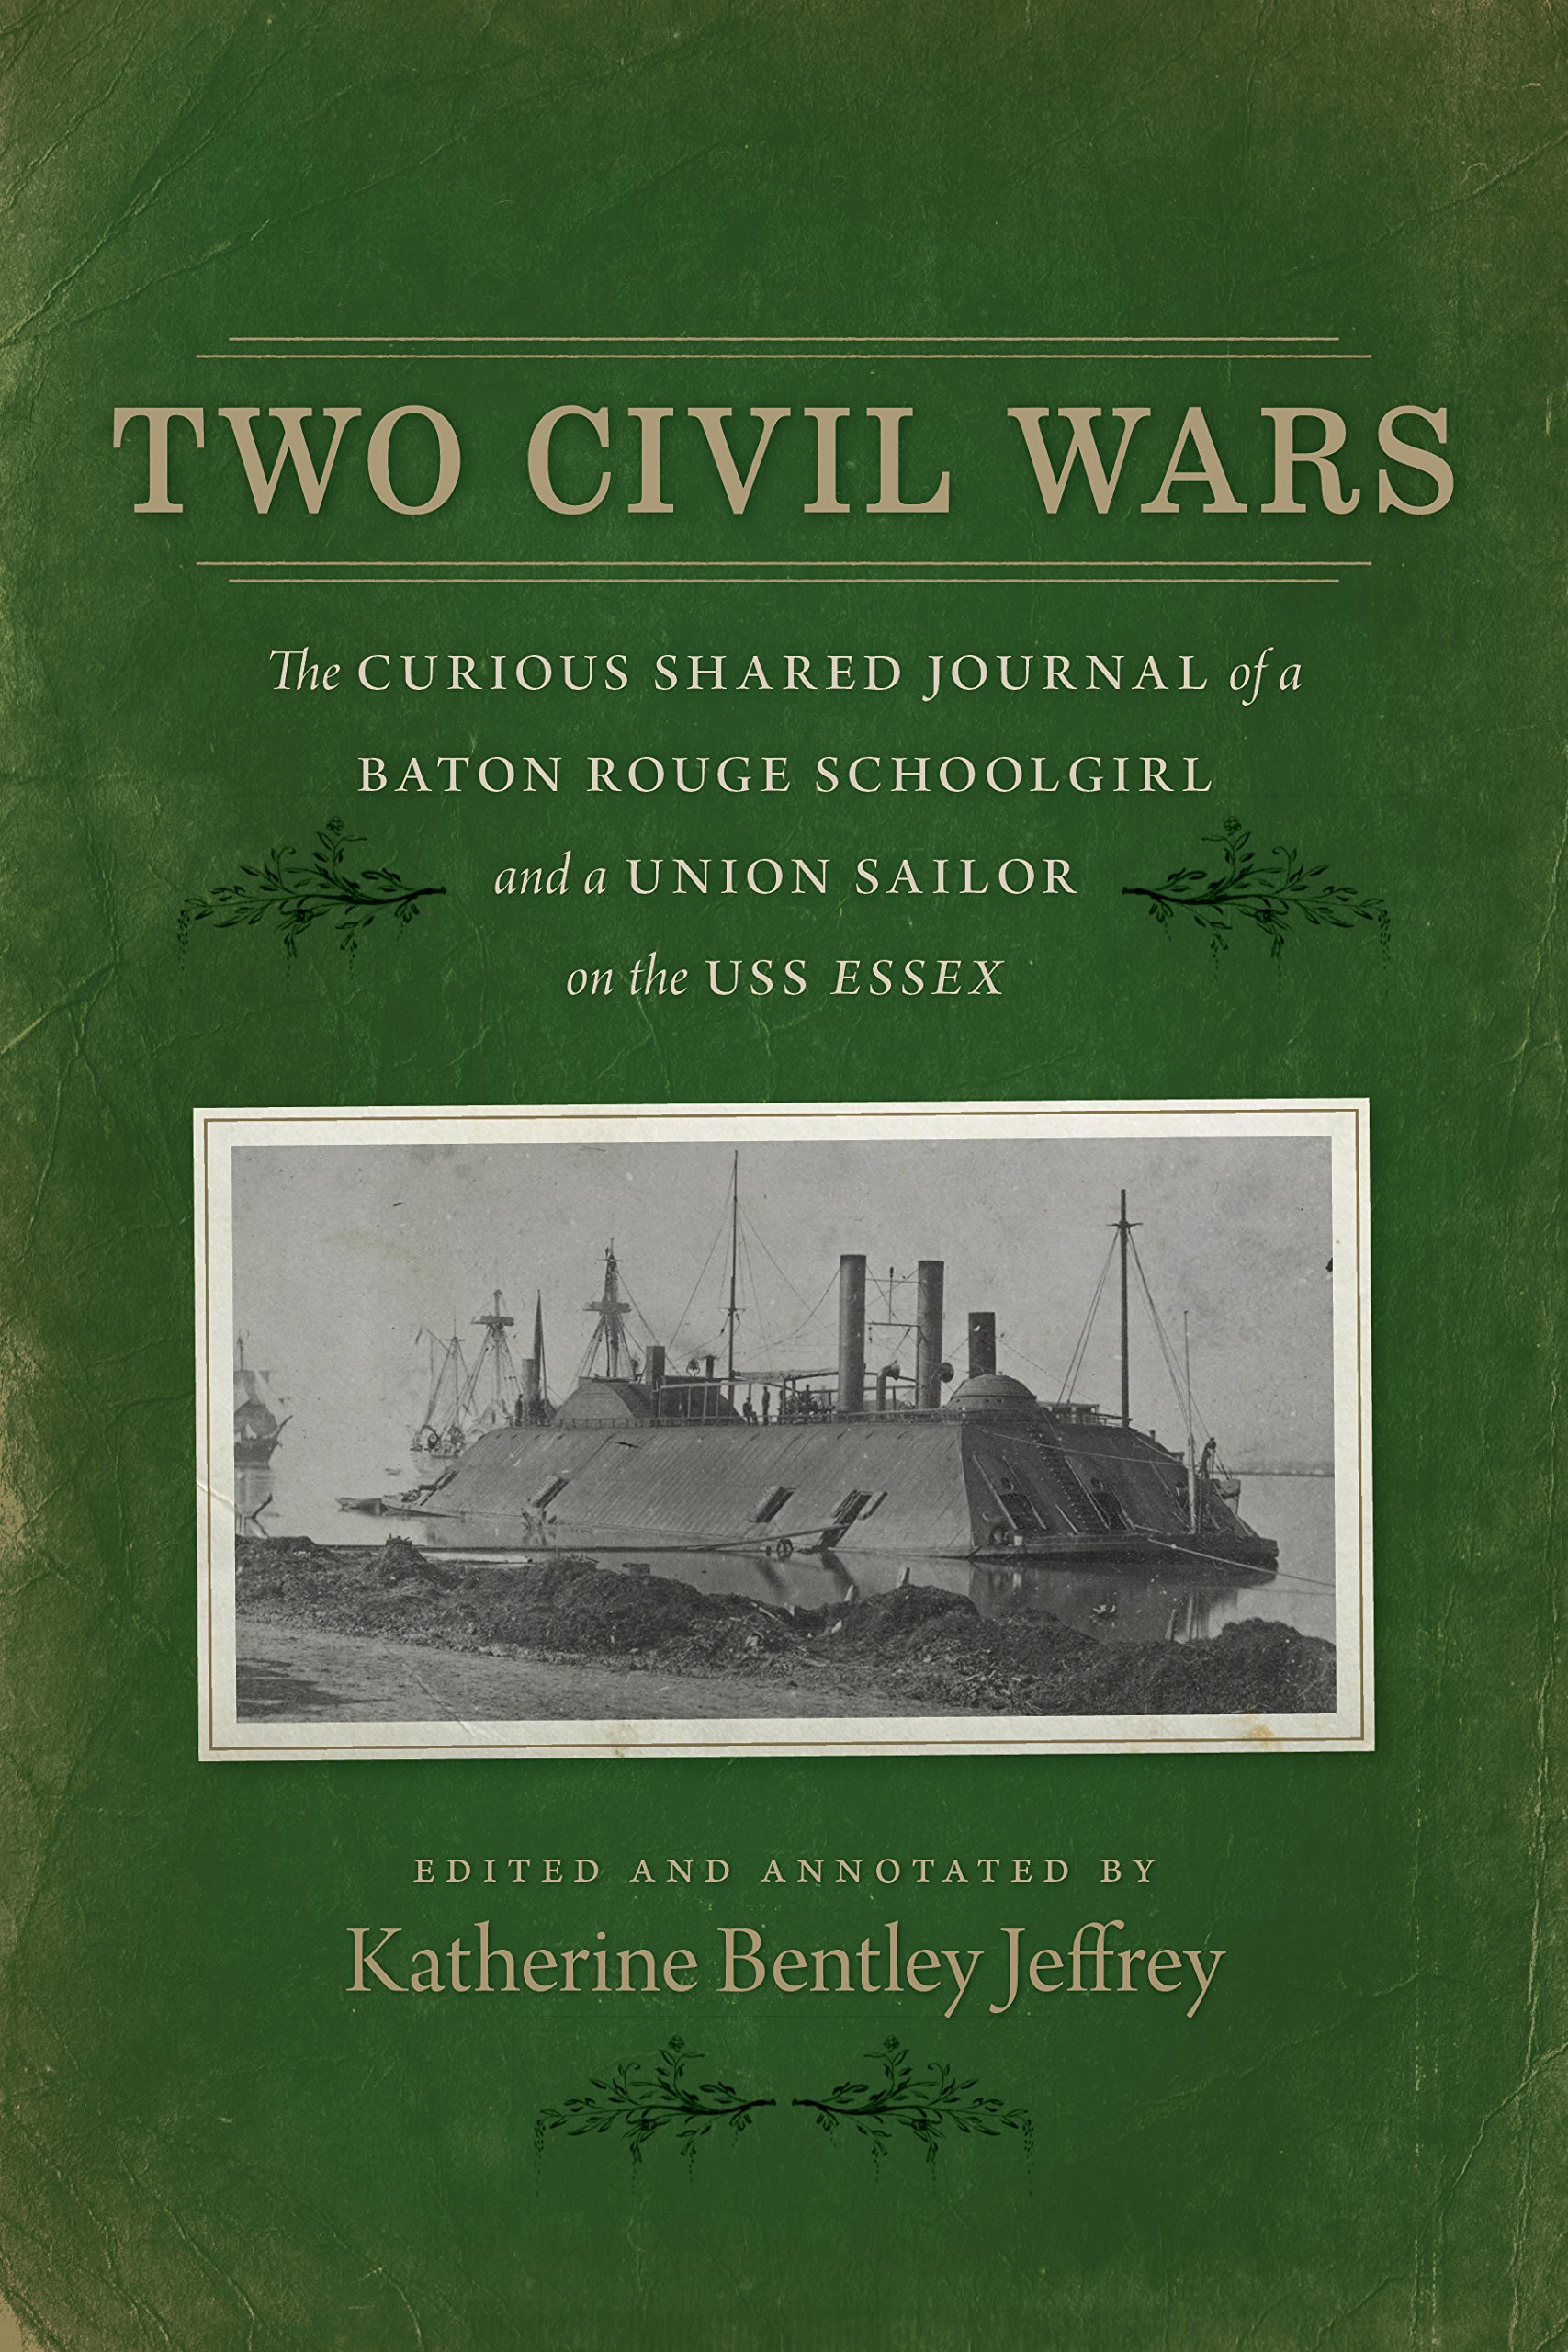 Two Civil Wars: The Curious Shared Journal of a Baton Rouge Schoolgirl and a Union Sailor on the USS Essex